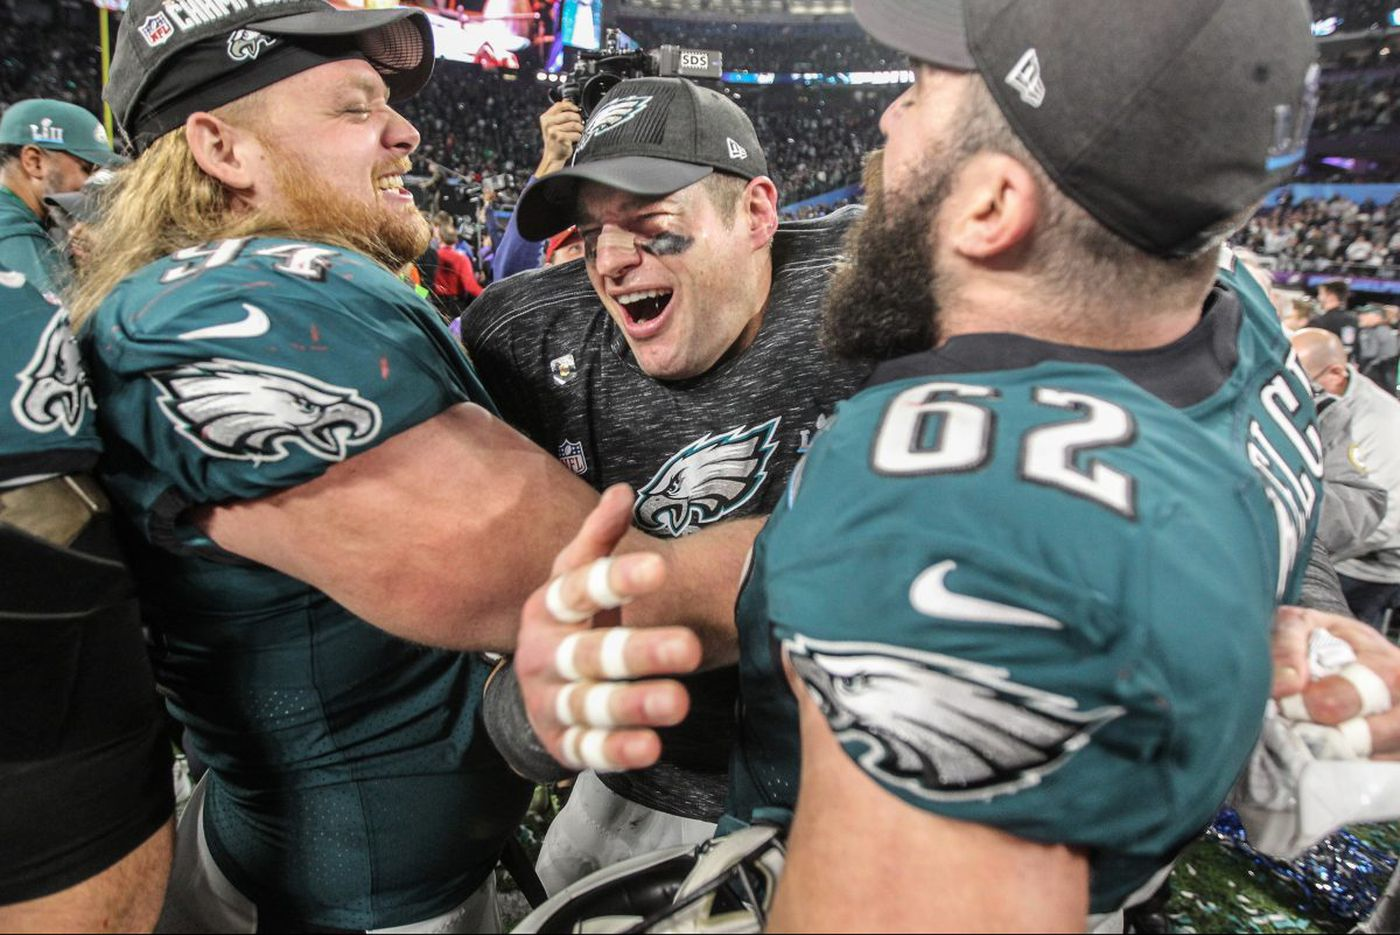 Eagles offensive line: The most dominant unit in Super Bowl LII